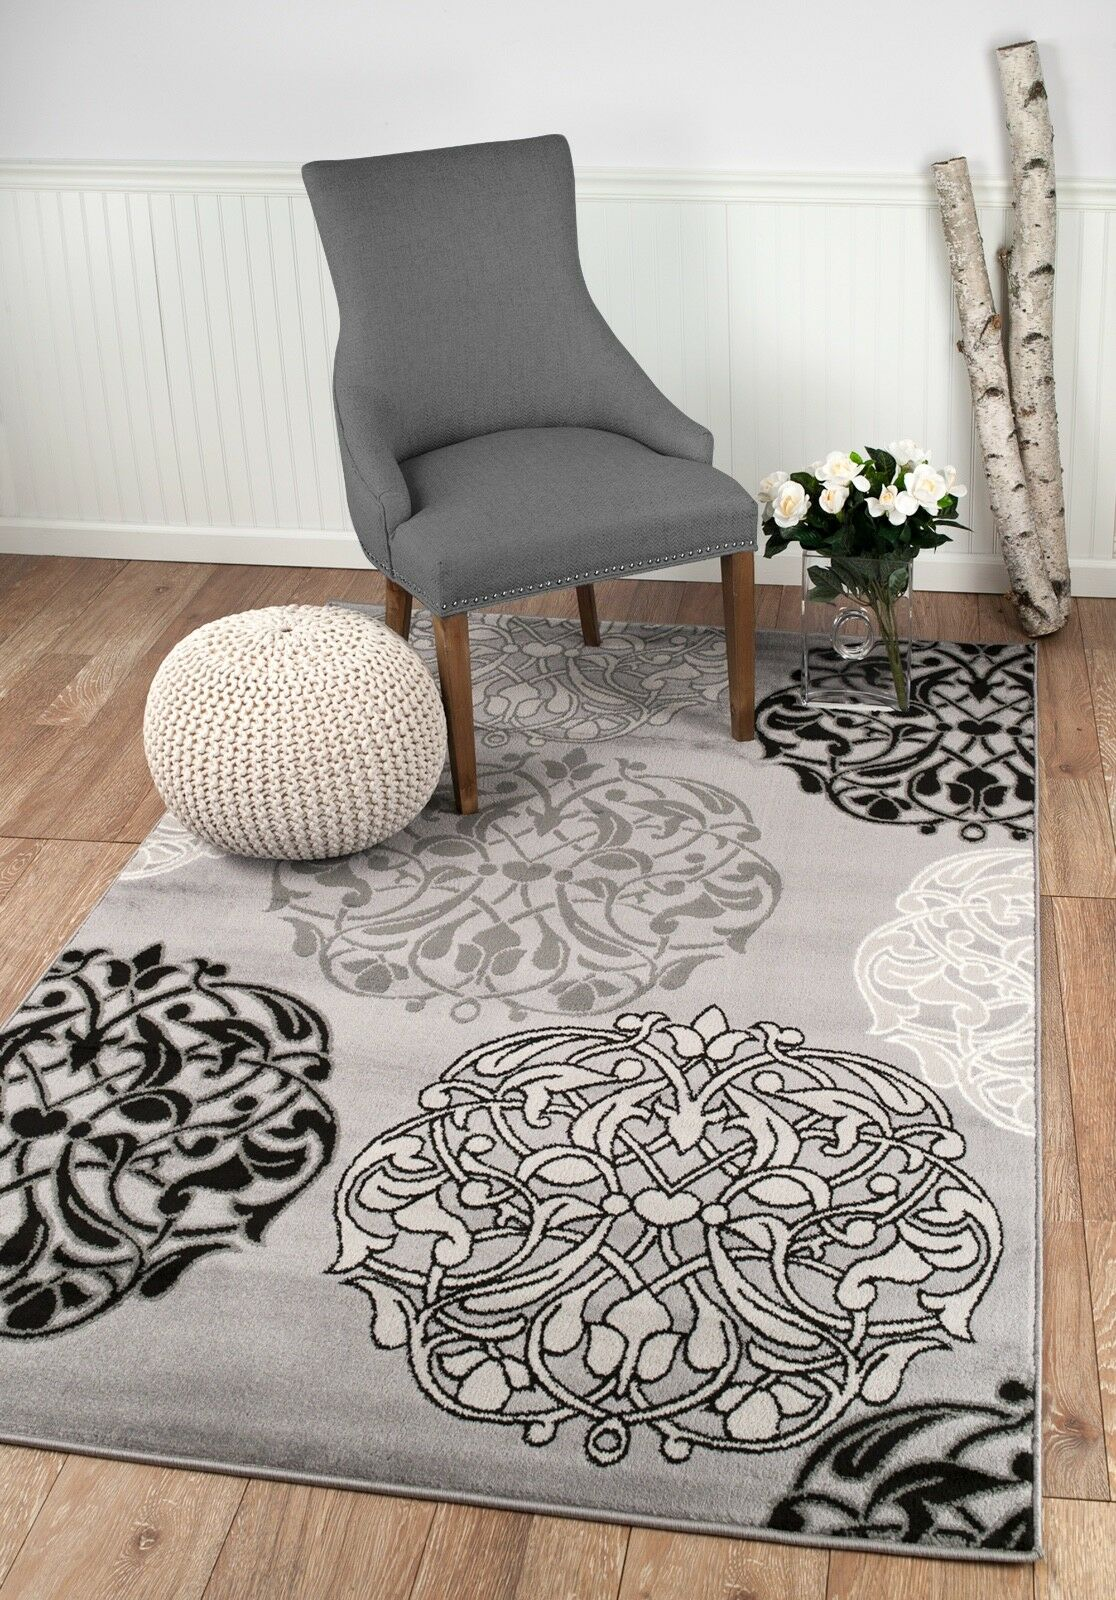 area rug Smt#45 Light and dark gray soft pile size options 2